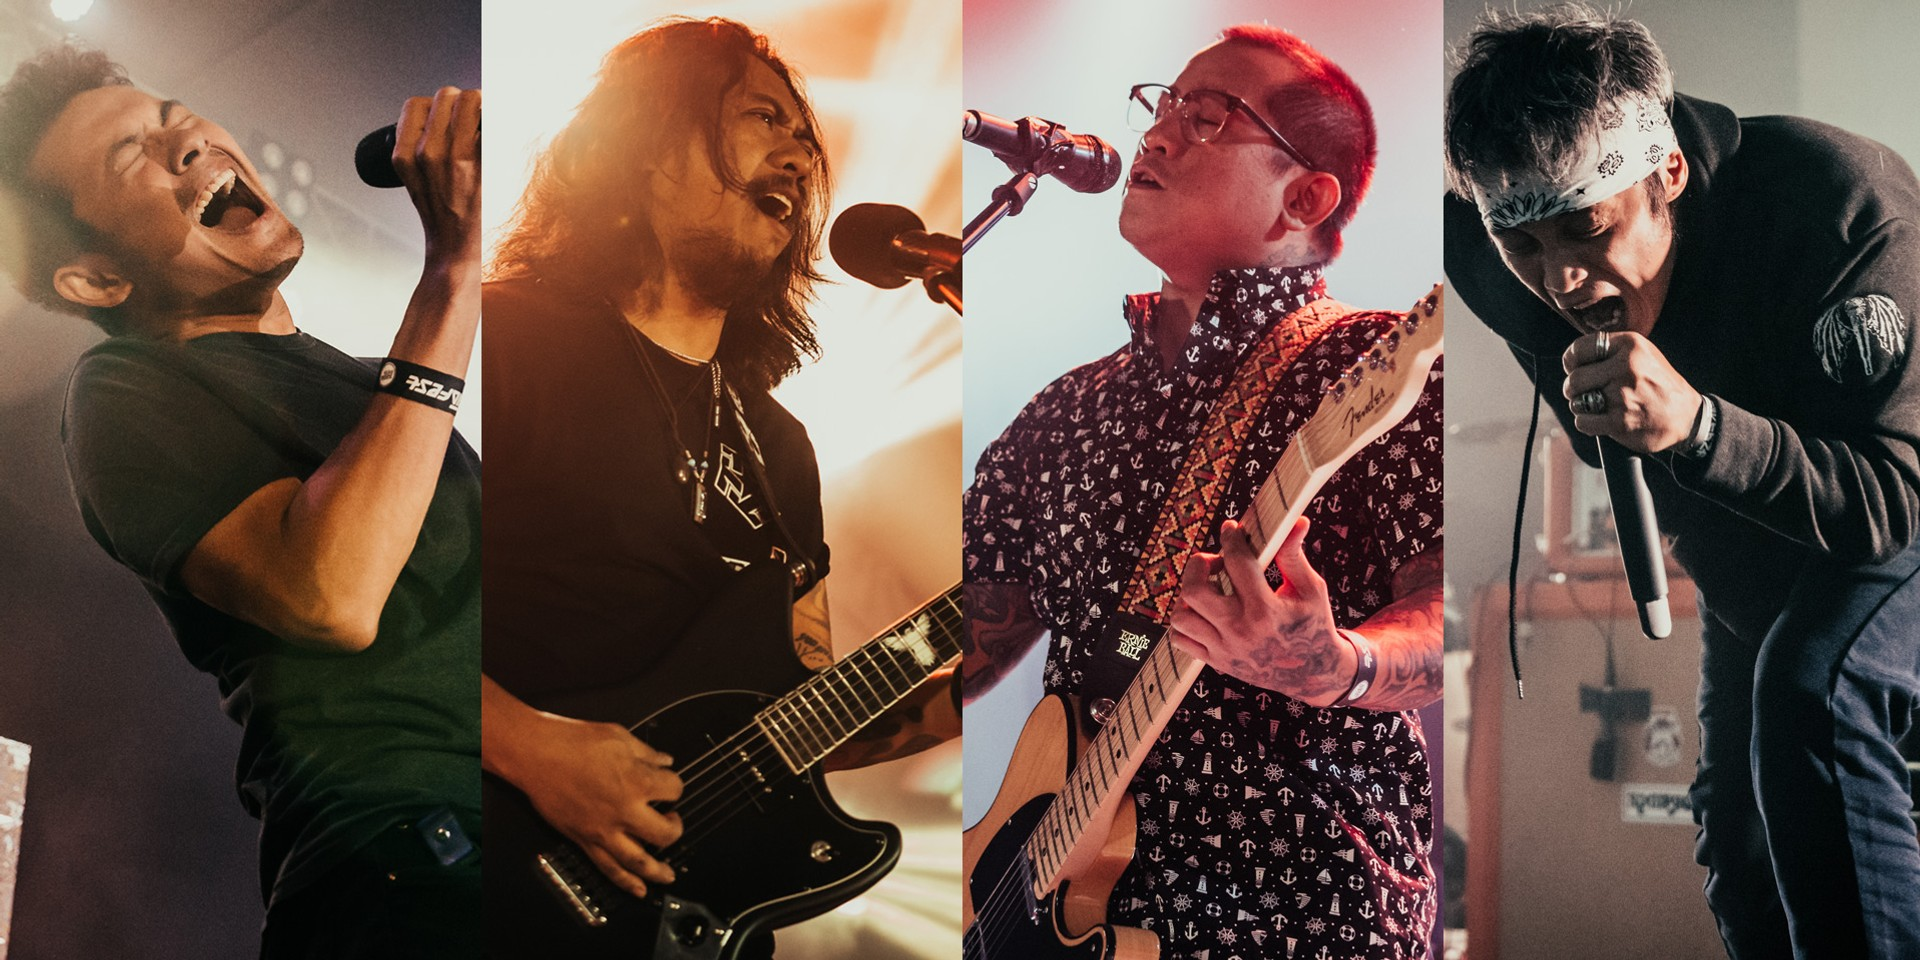 Threadfest closes 2019 with explosive performances by Salamin, Typecast, Urbandub, and more – photo gallery